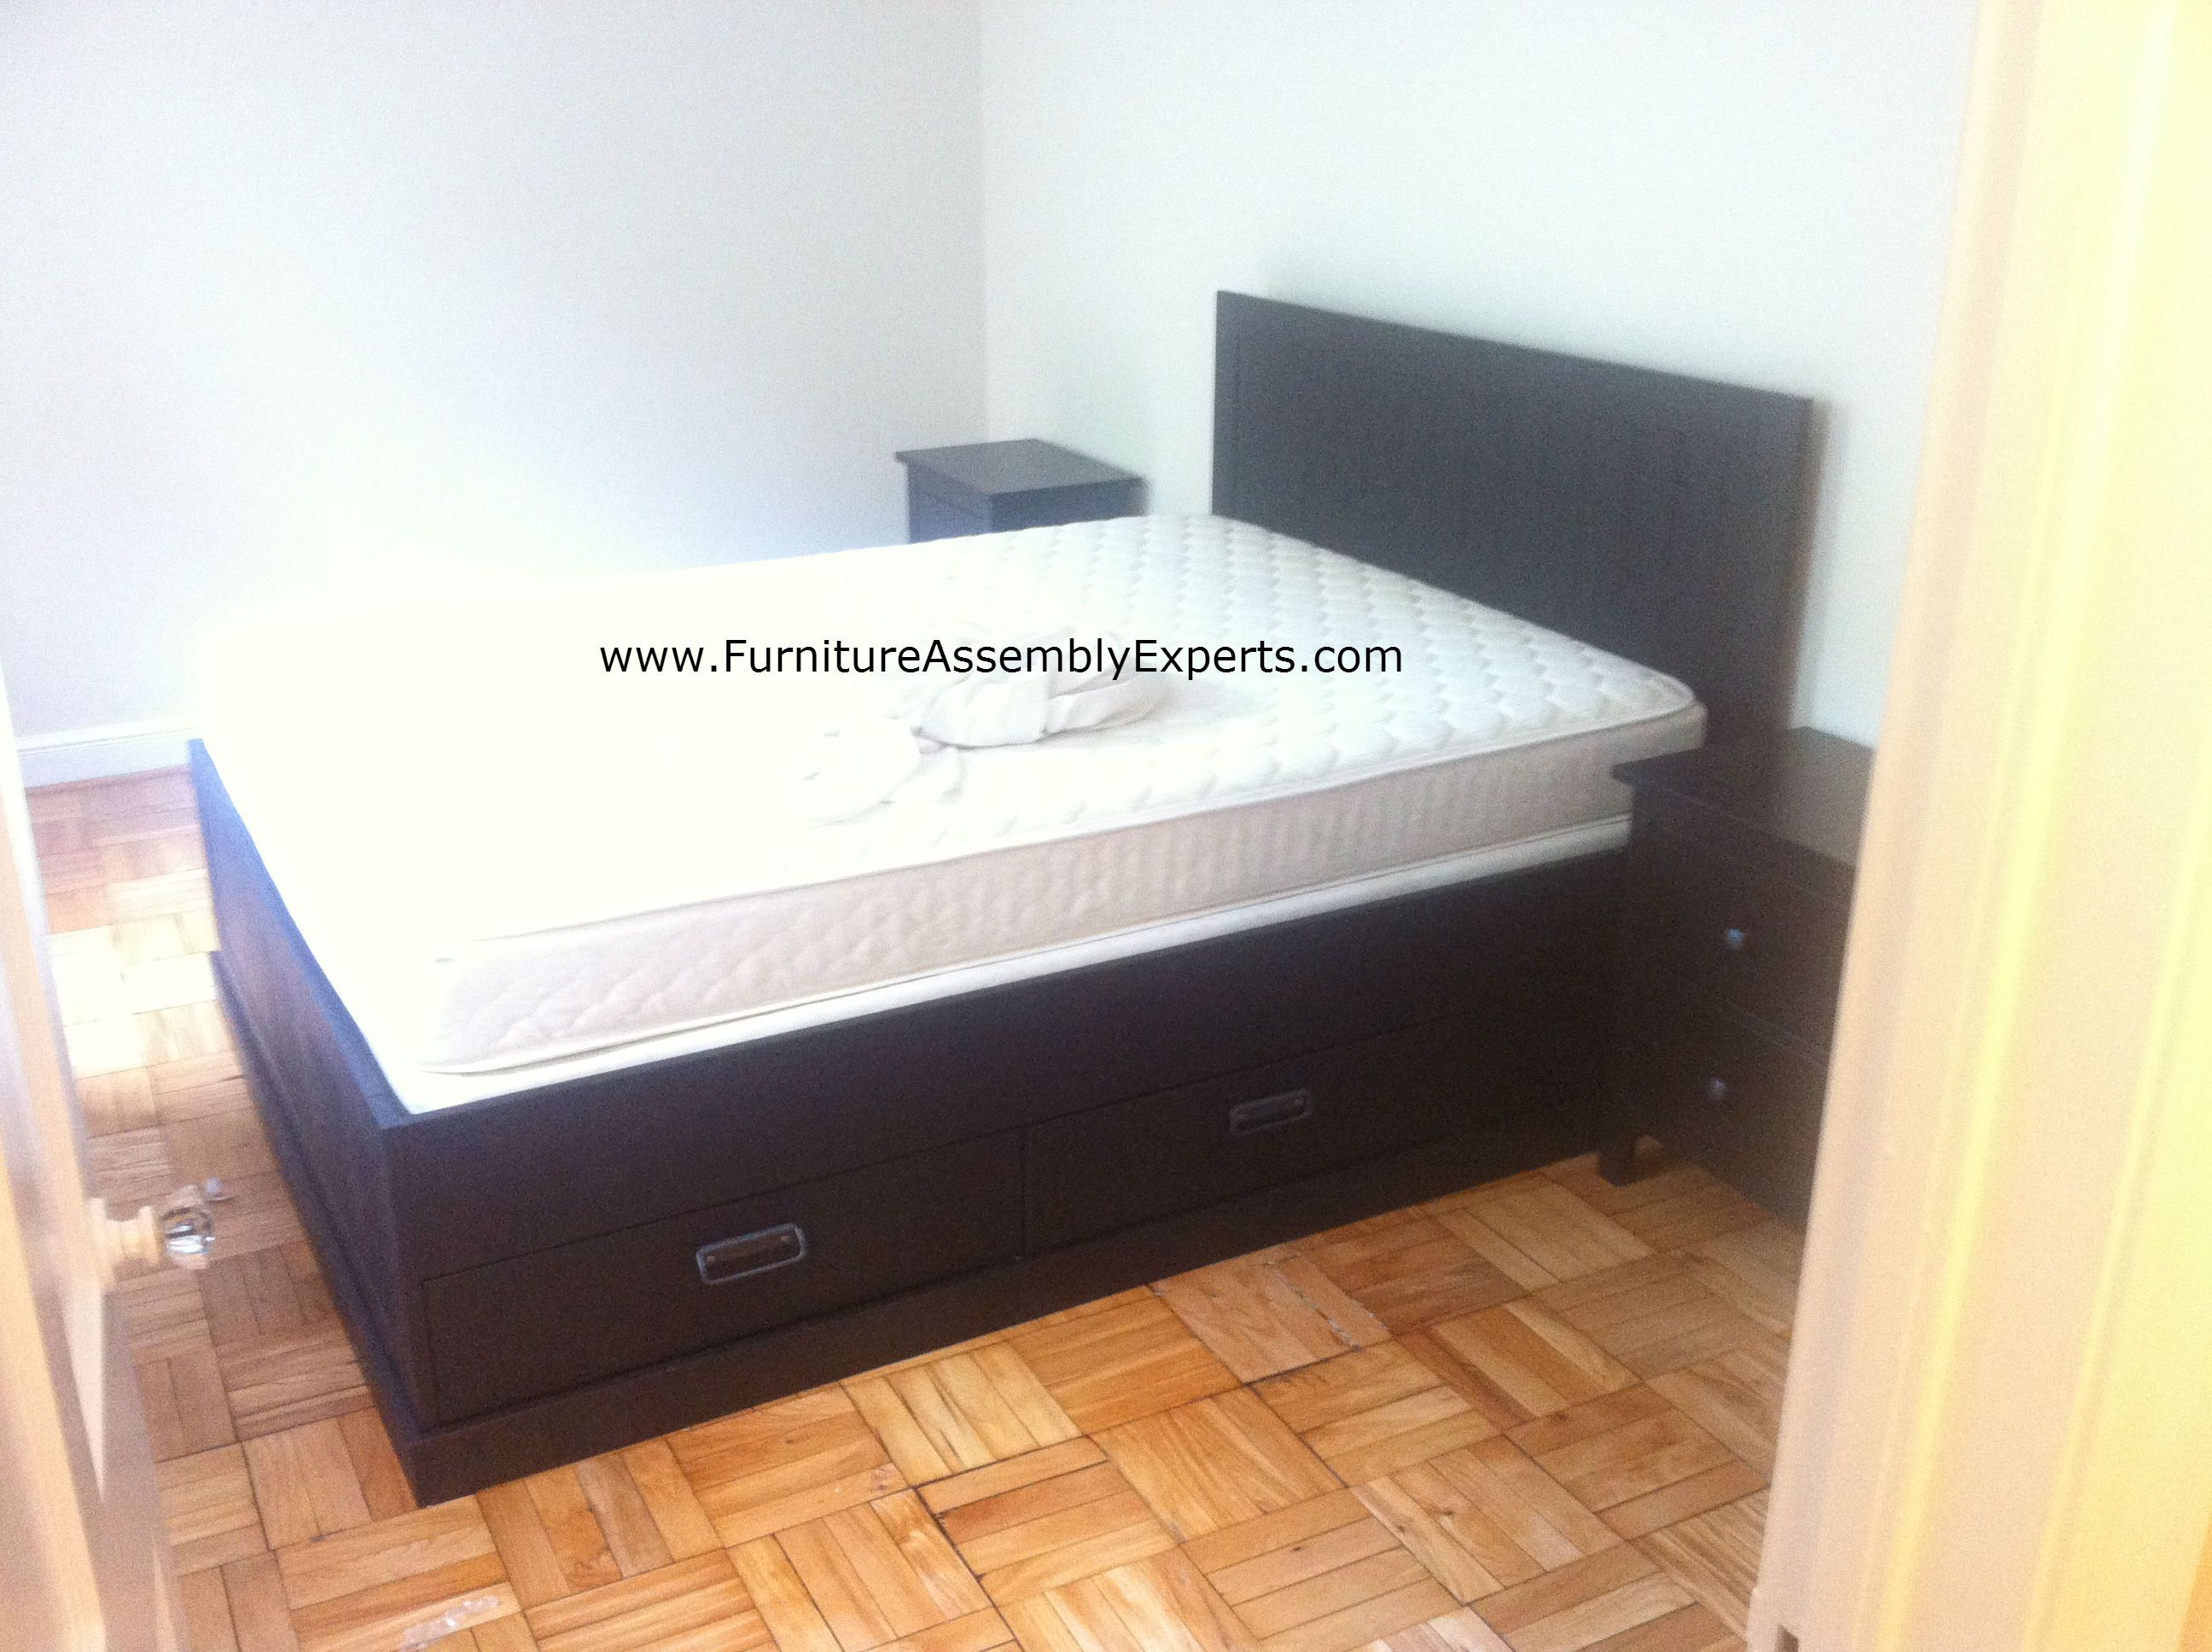 Ikea FJell Storage Bed Assembled In Arlington Va For A Customer Moving Into  Her Apartment By